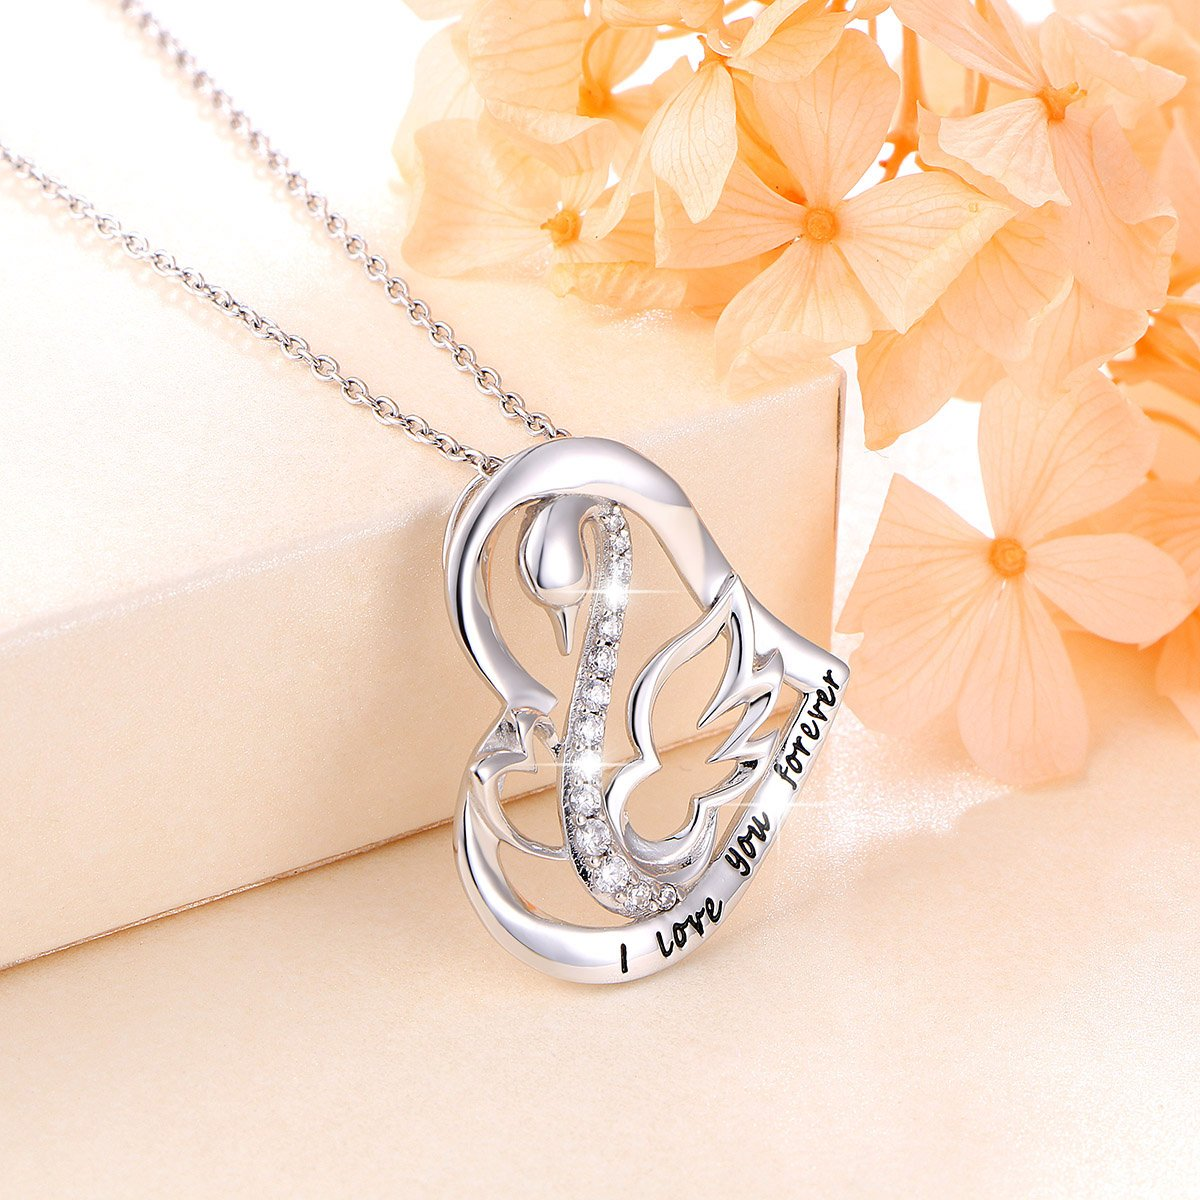 Ladytree S925 Sterling Silver Swan Necklace I Love You Forever Love Heart Pendant for Mom Women,18